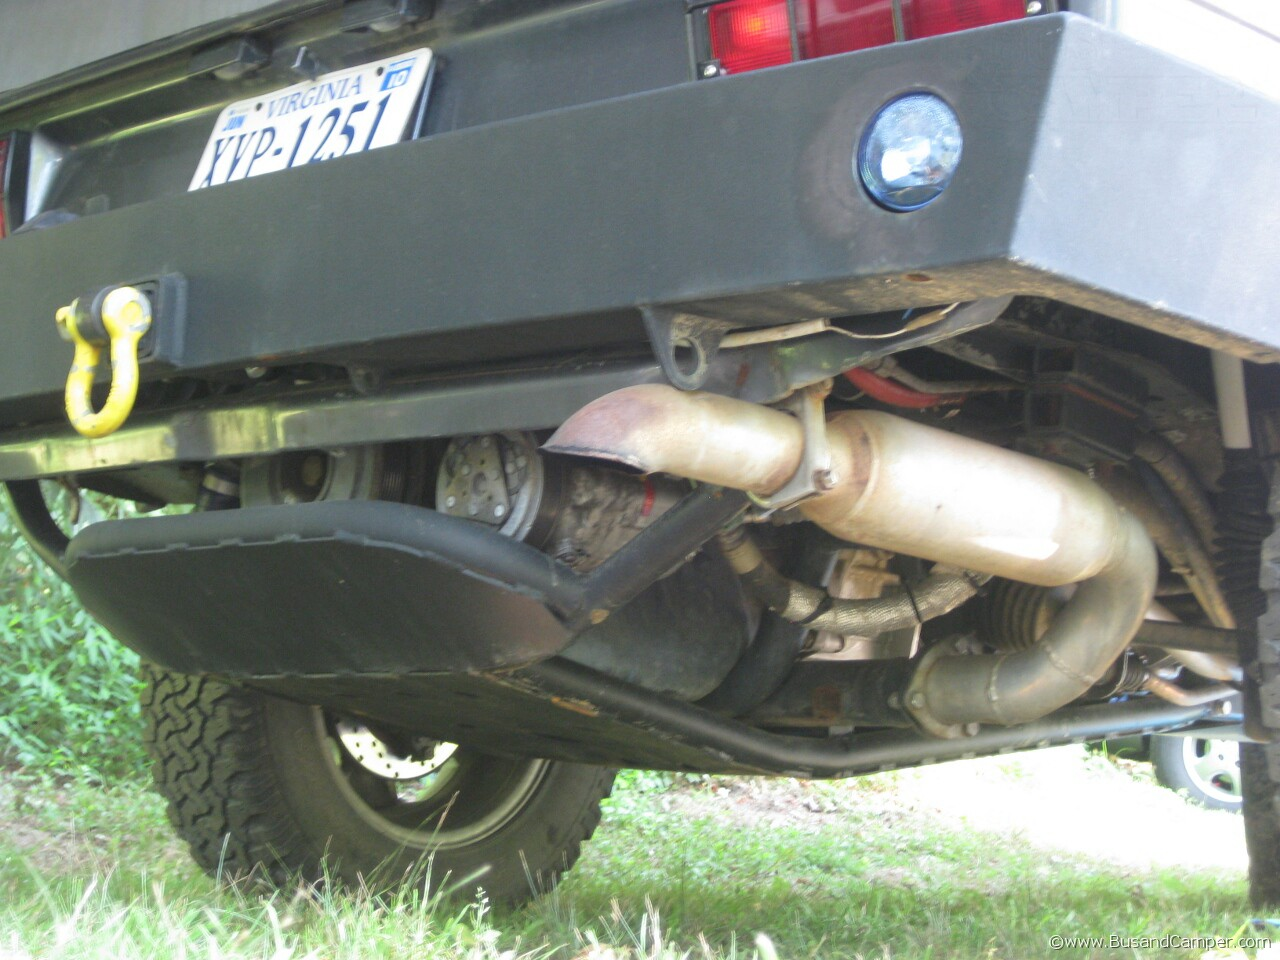 VW Syncro sump guard